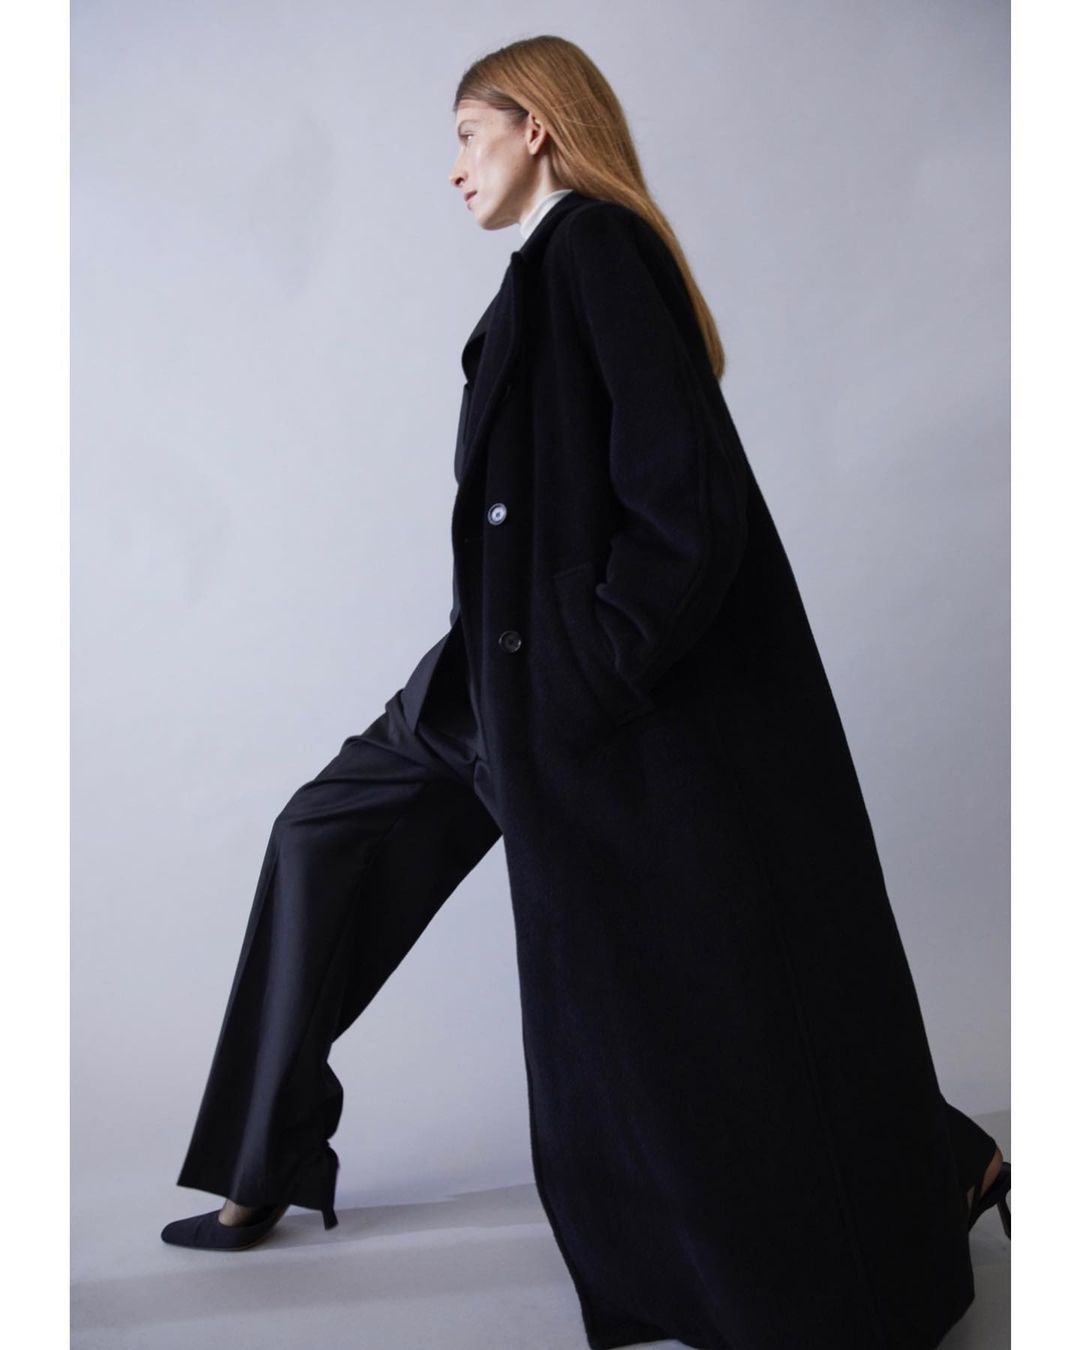 ISABELLA COAT BY HOUSE OF DAGMAR